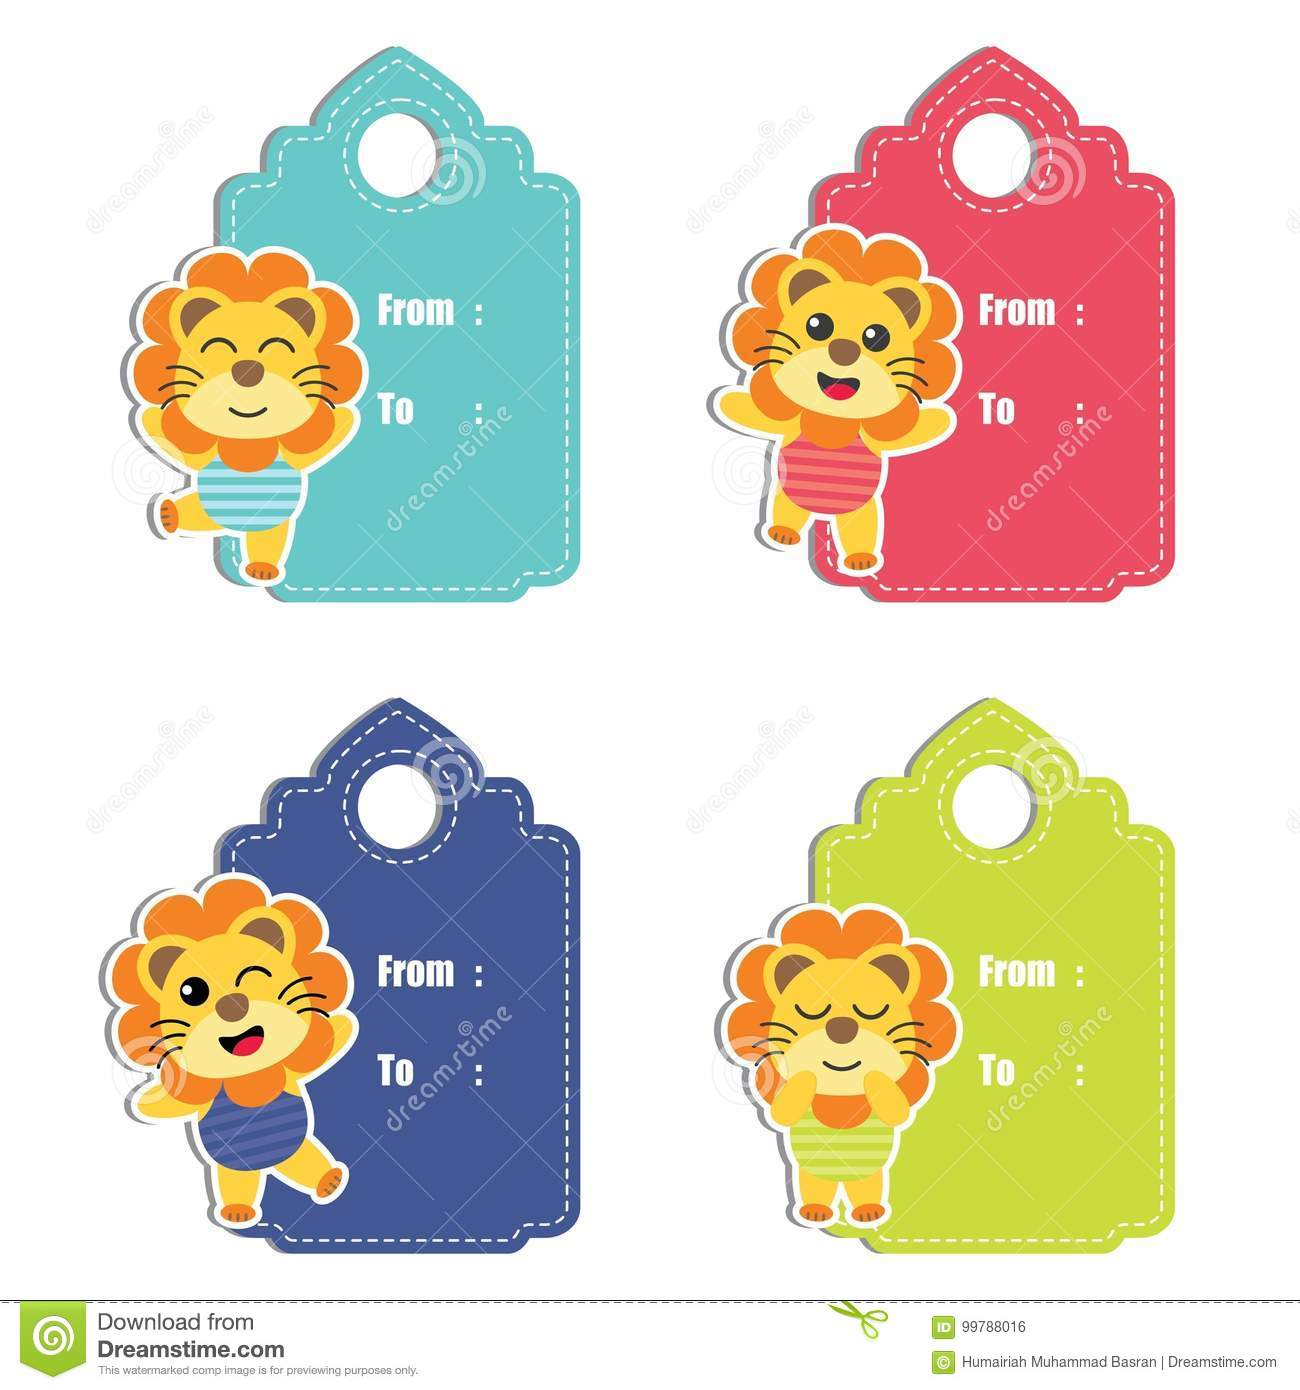 Cute Lion Boys On Colorful Background Cartoon Illustration For Birthday Gift Tag Design